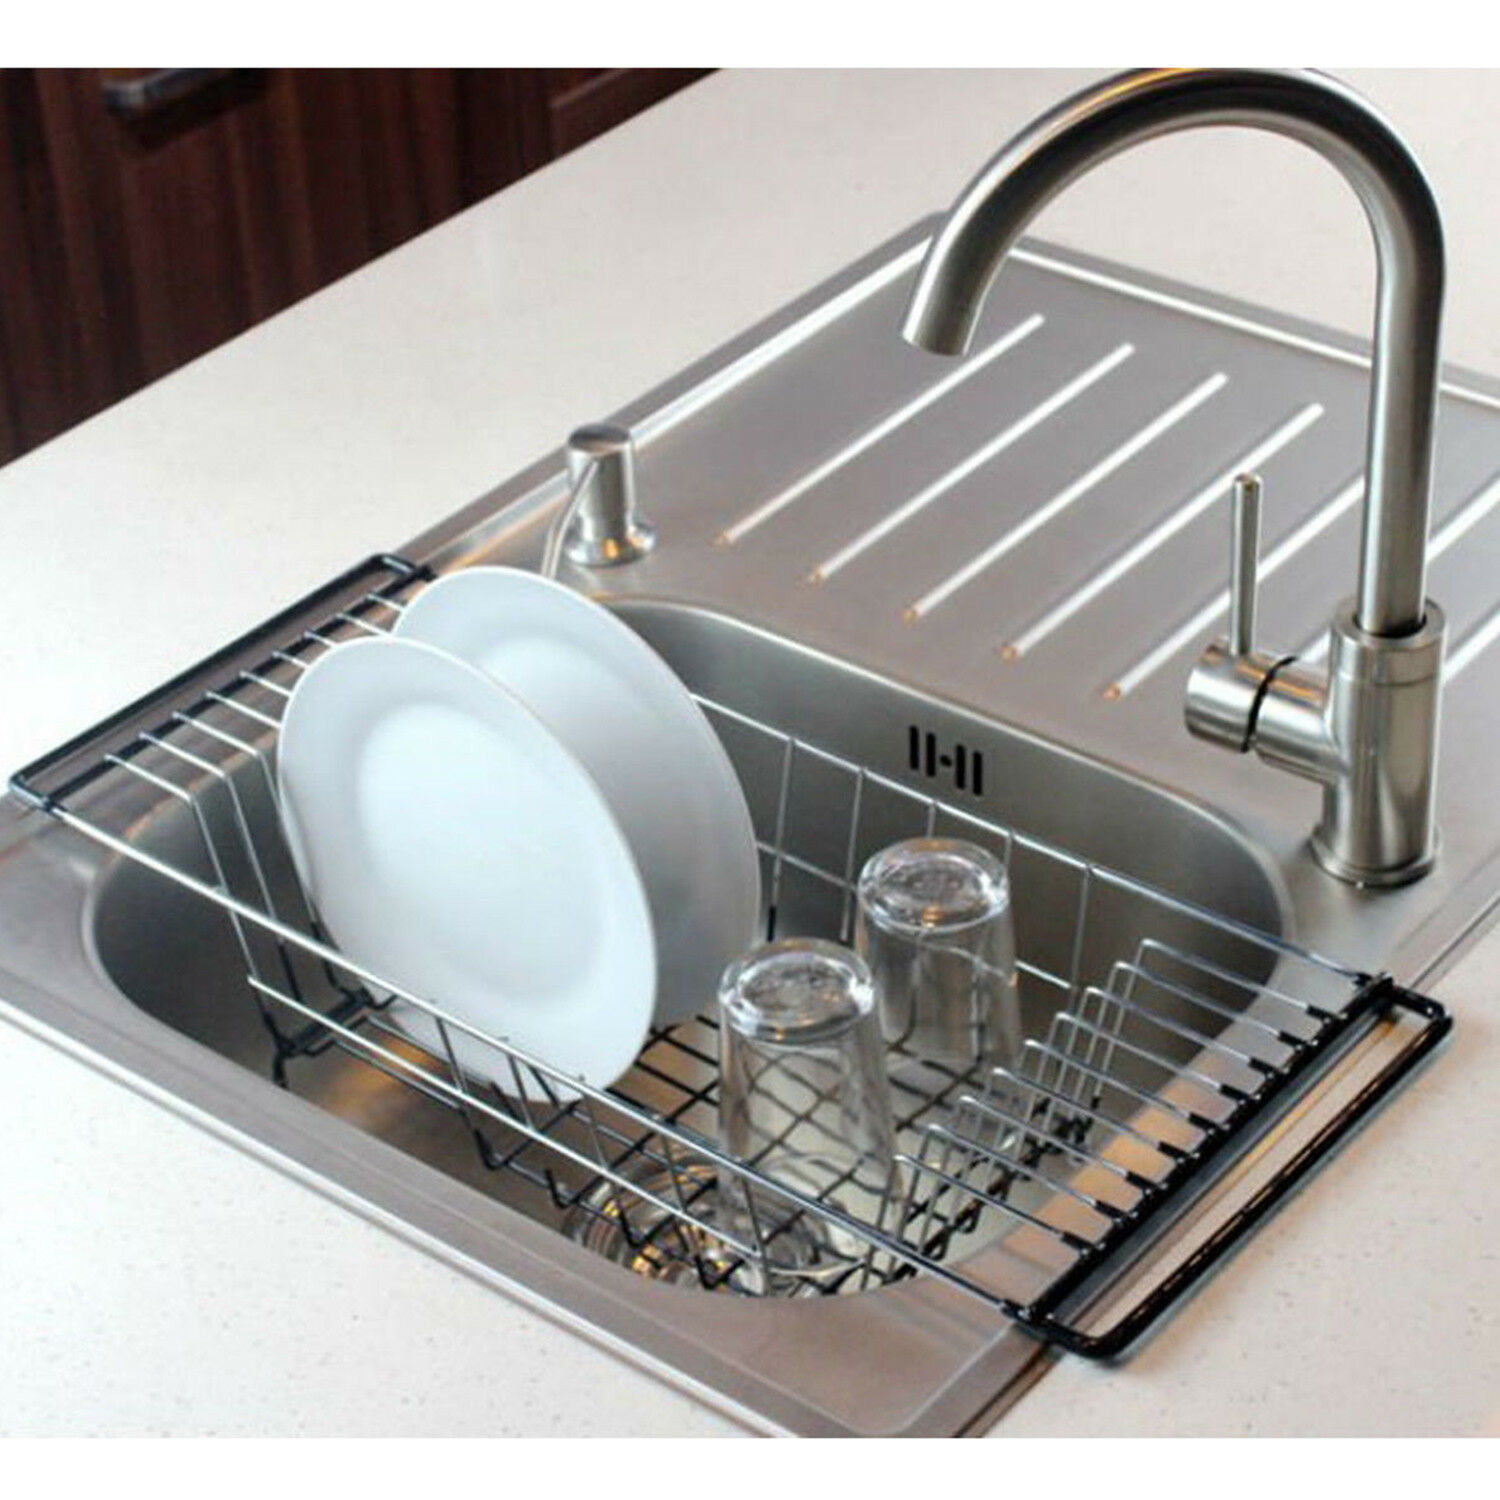 Superbe Over The Sink Dish Drying Rack Rustproof Stainless Steel Kitchen Dish  Drainer 1 Of 6FREE Shipping See More